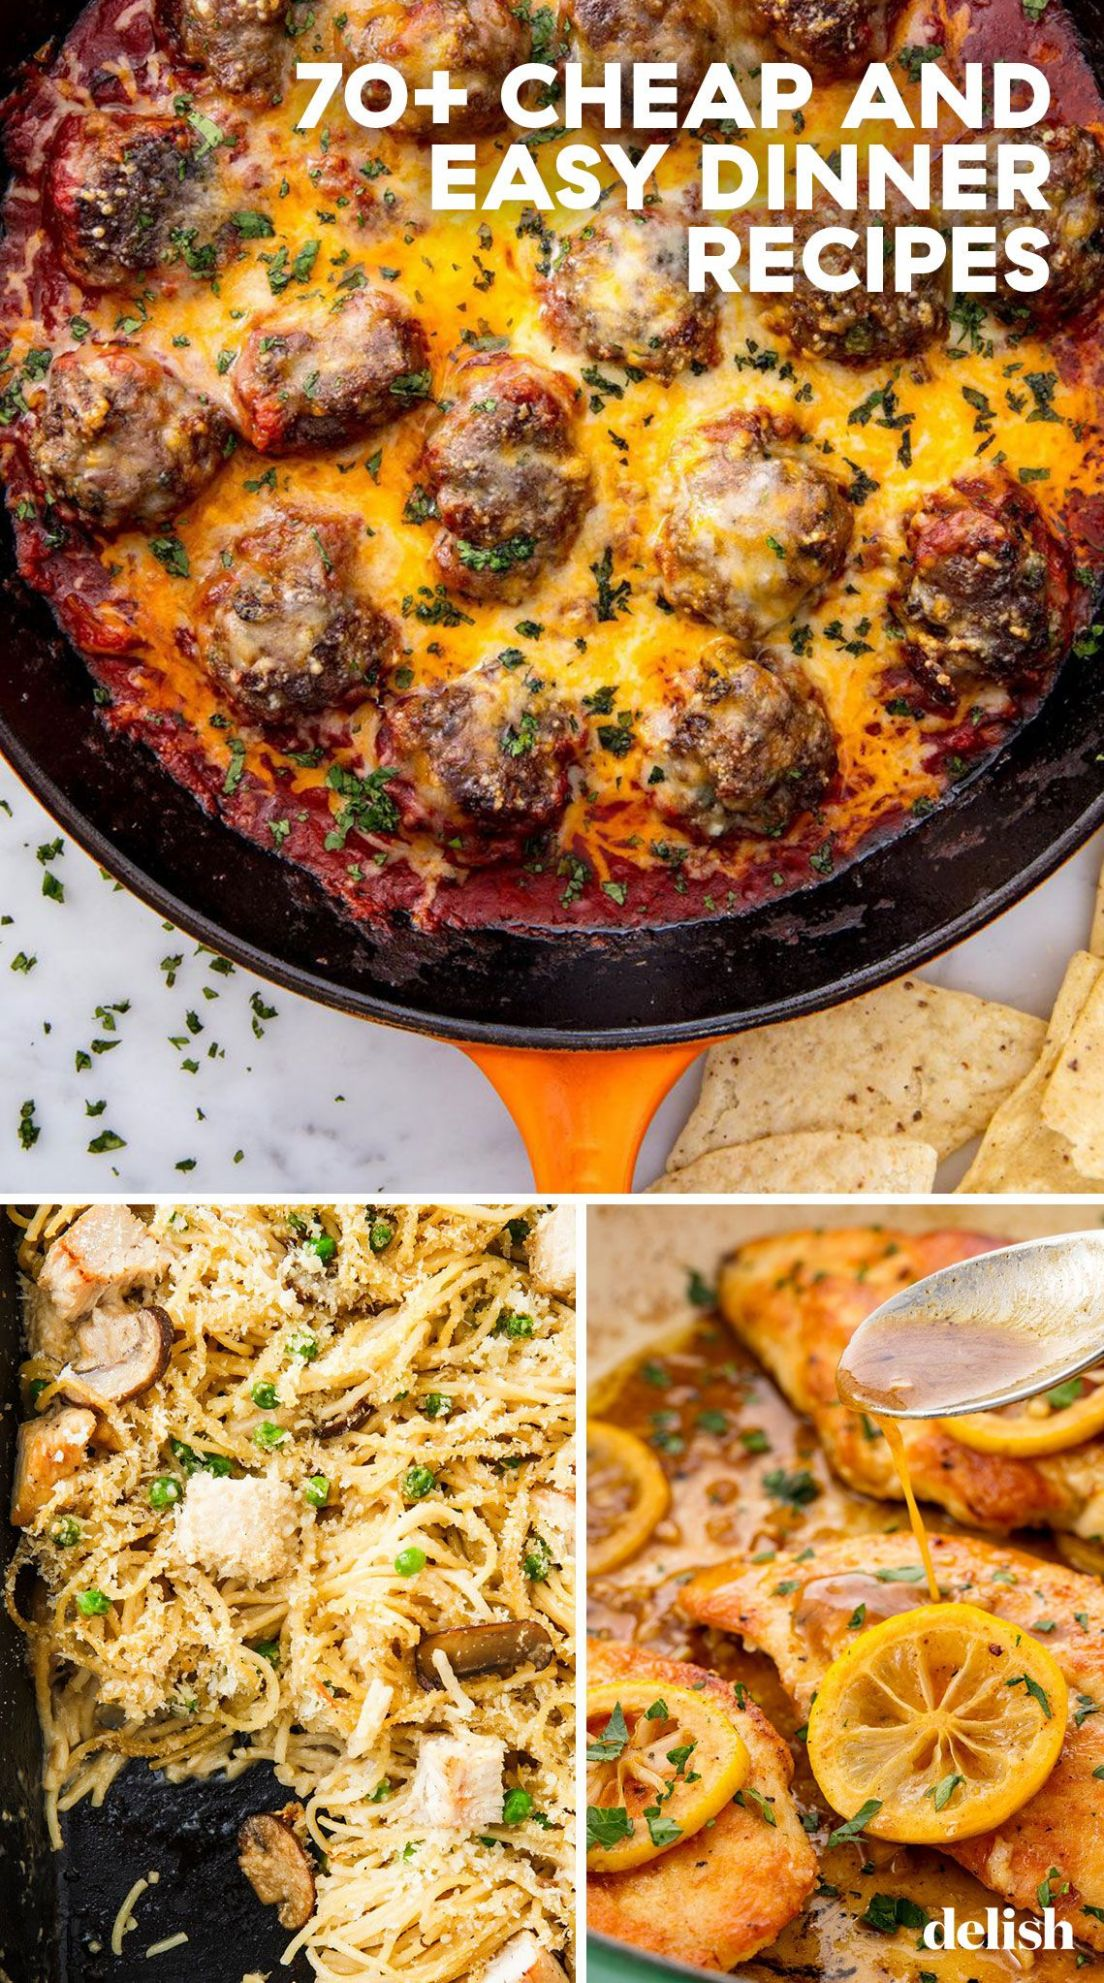 11+ Easy Cheap Dinner Recipes - Inexpensive Dinner Ideas - Simple Yummy Recipes